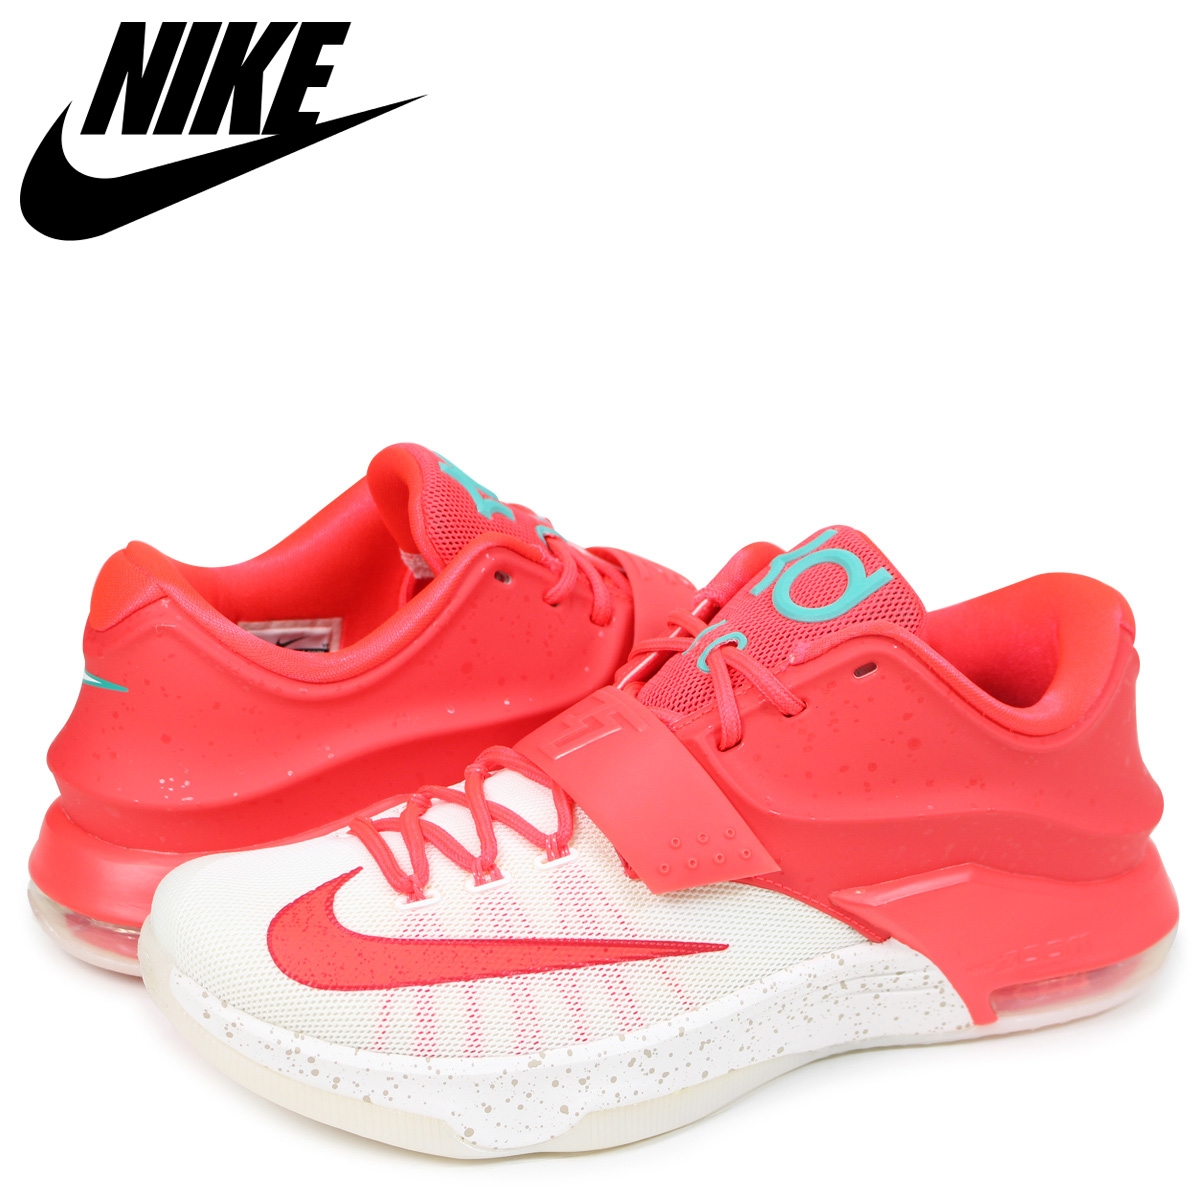 2ee7b31b2216 Source · Whats up Sports NIKE XMAS Nike KD 7 sneakers men 707 560 613 Kevin